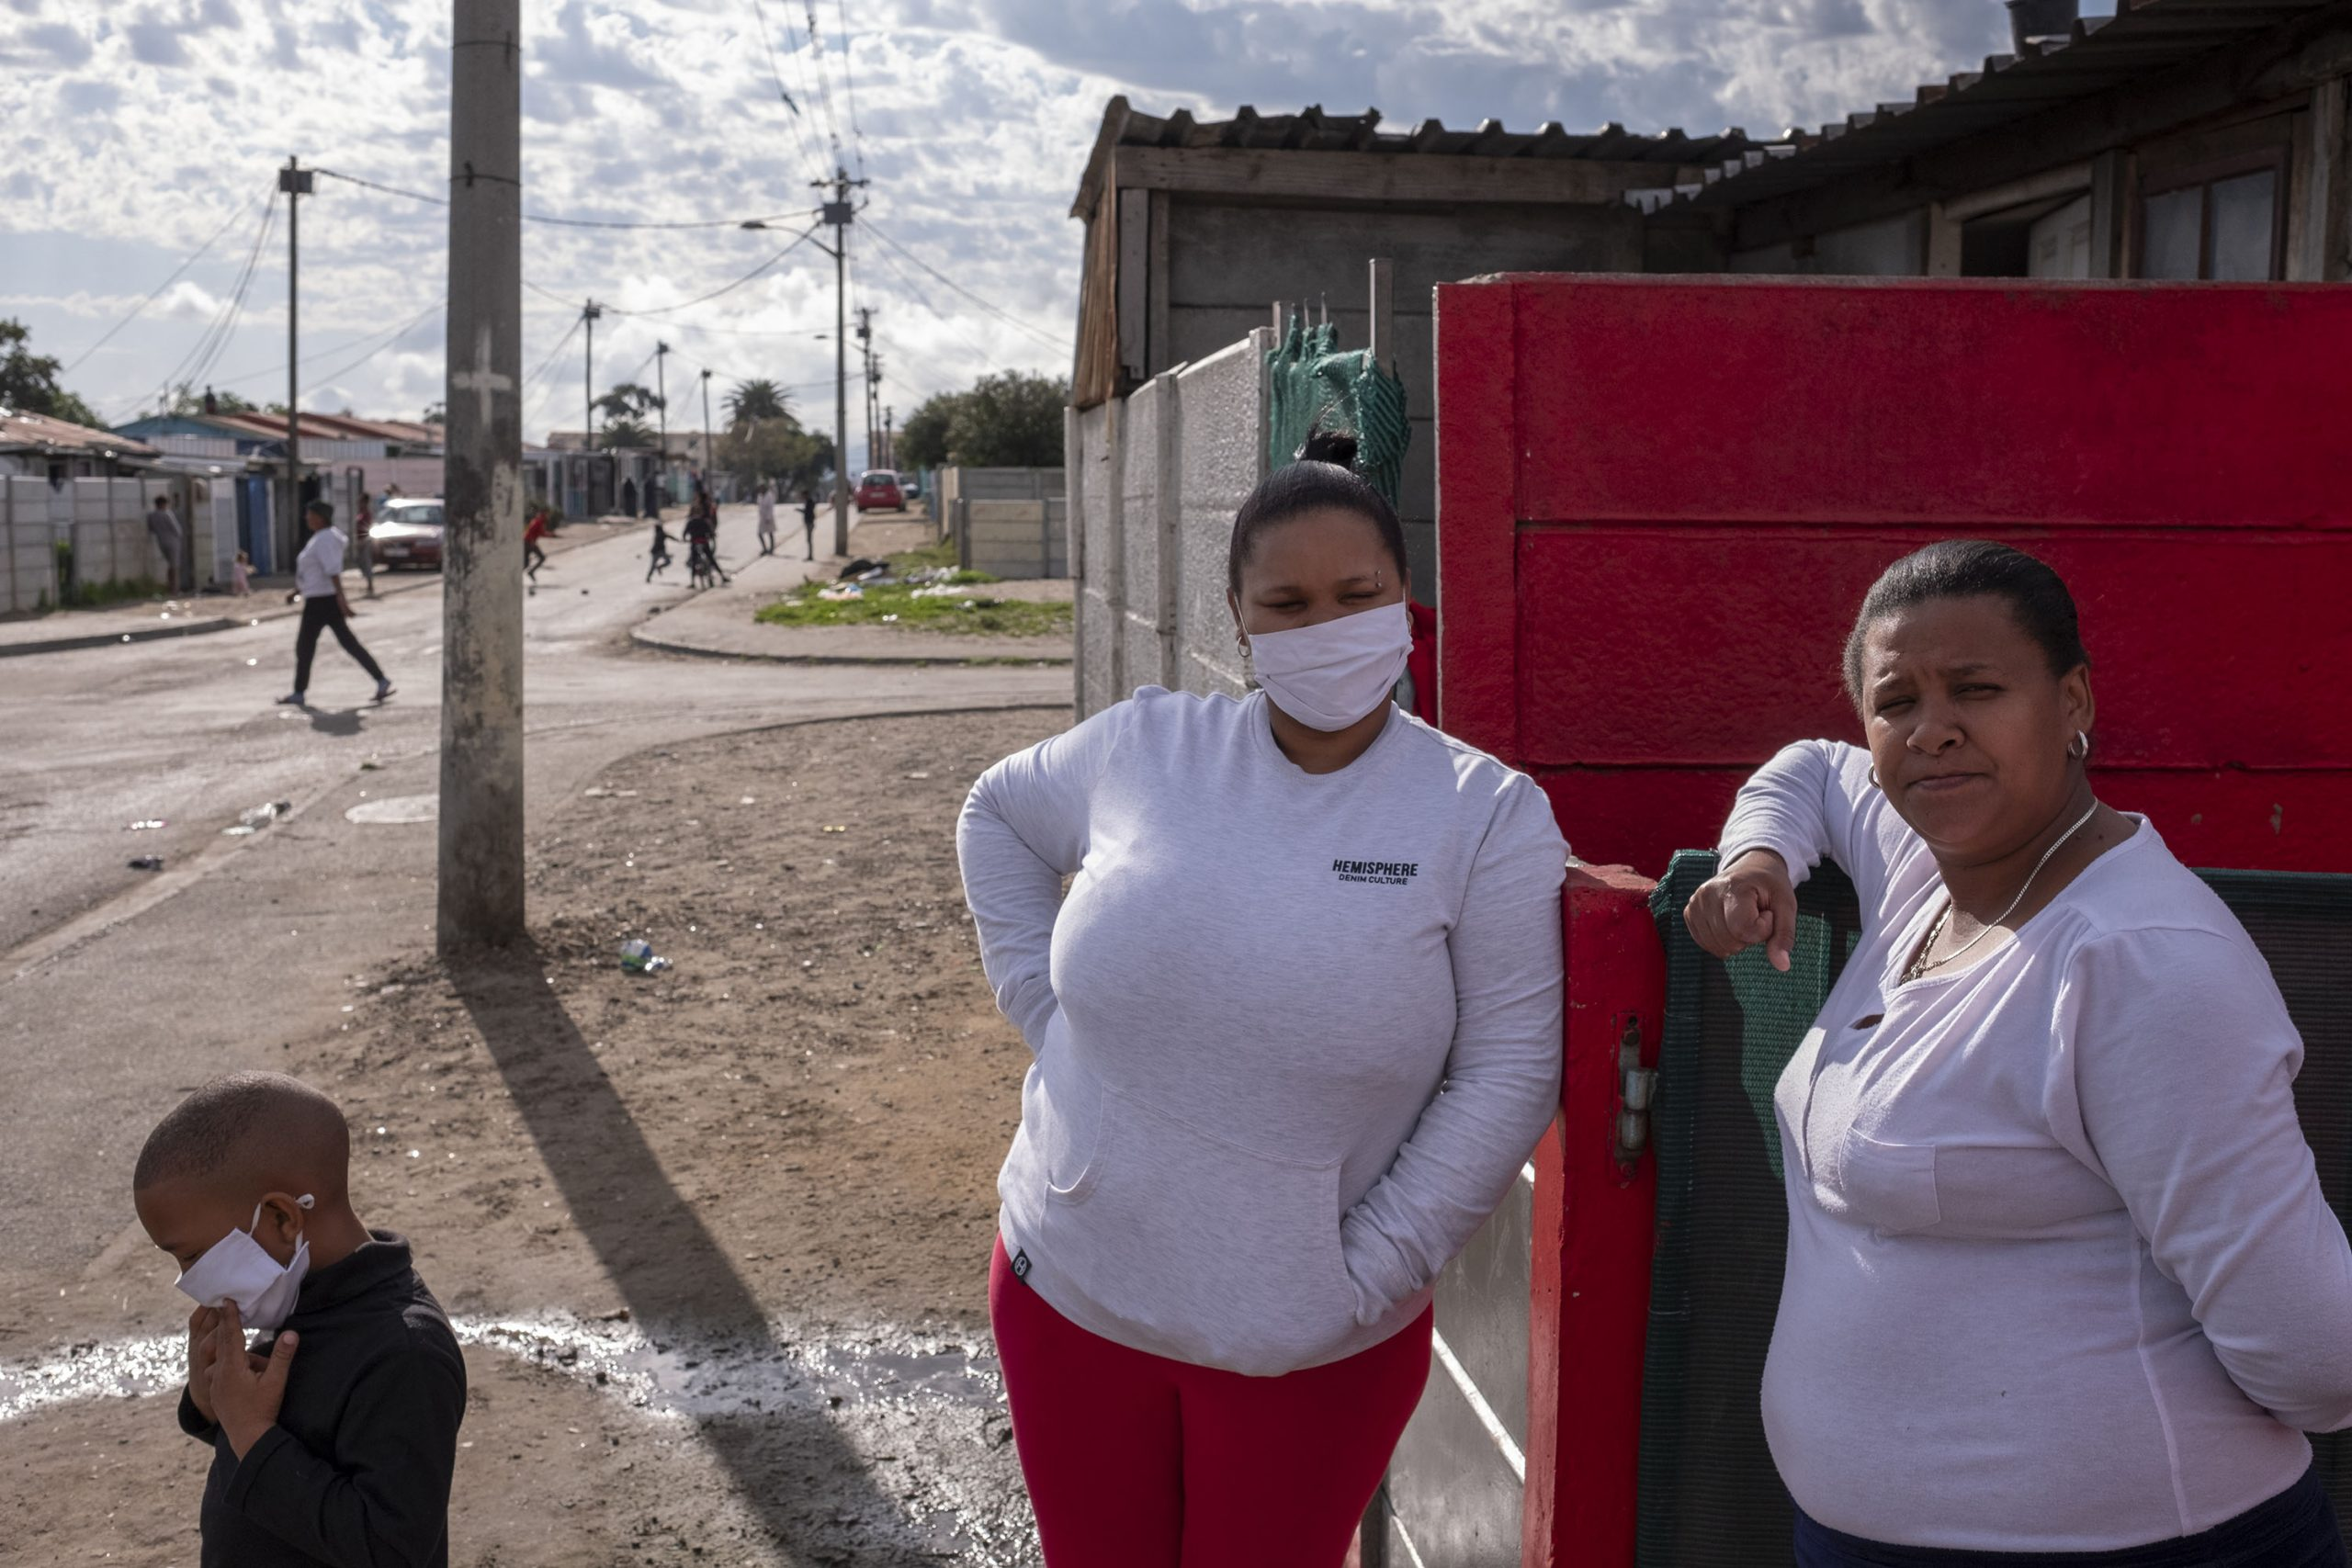 9 June 2020: From left, Angelique Nico, a former colleague of Petrus Miggels, with her son and Nora Southgate, Cecilia Meintjies' niece, stand outside the couple's house in Uitsig.